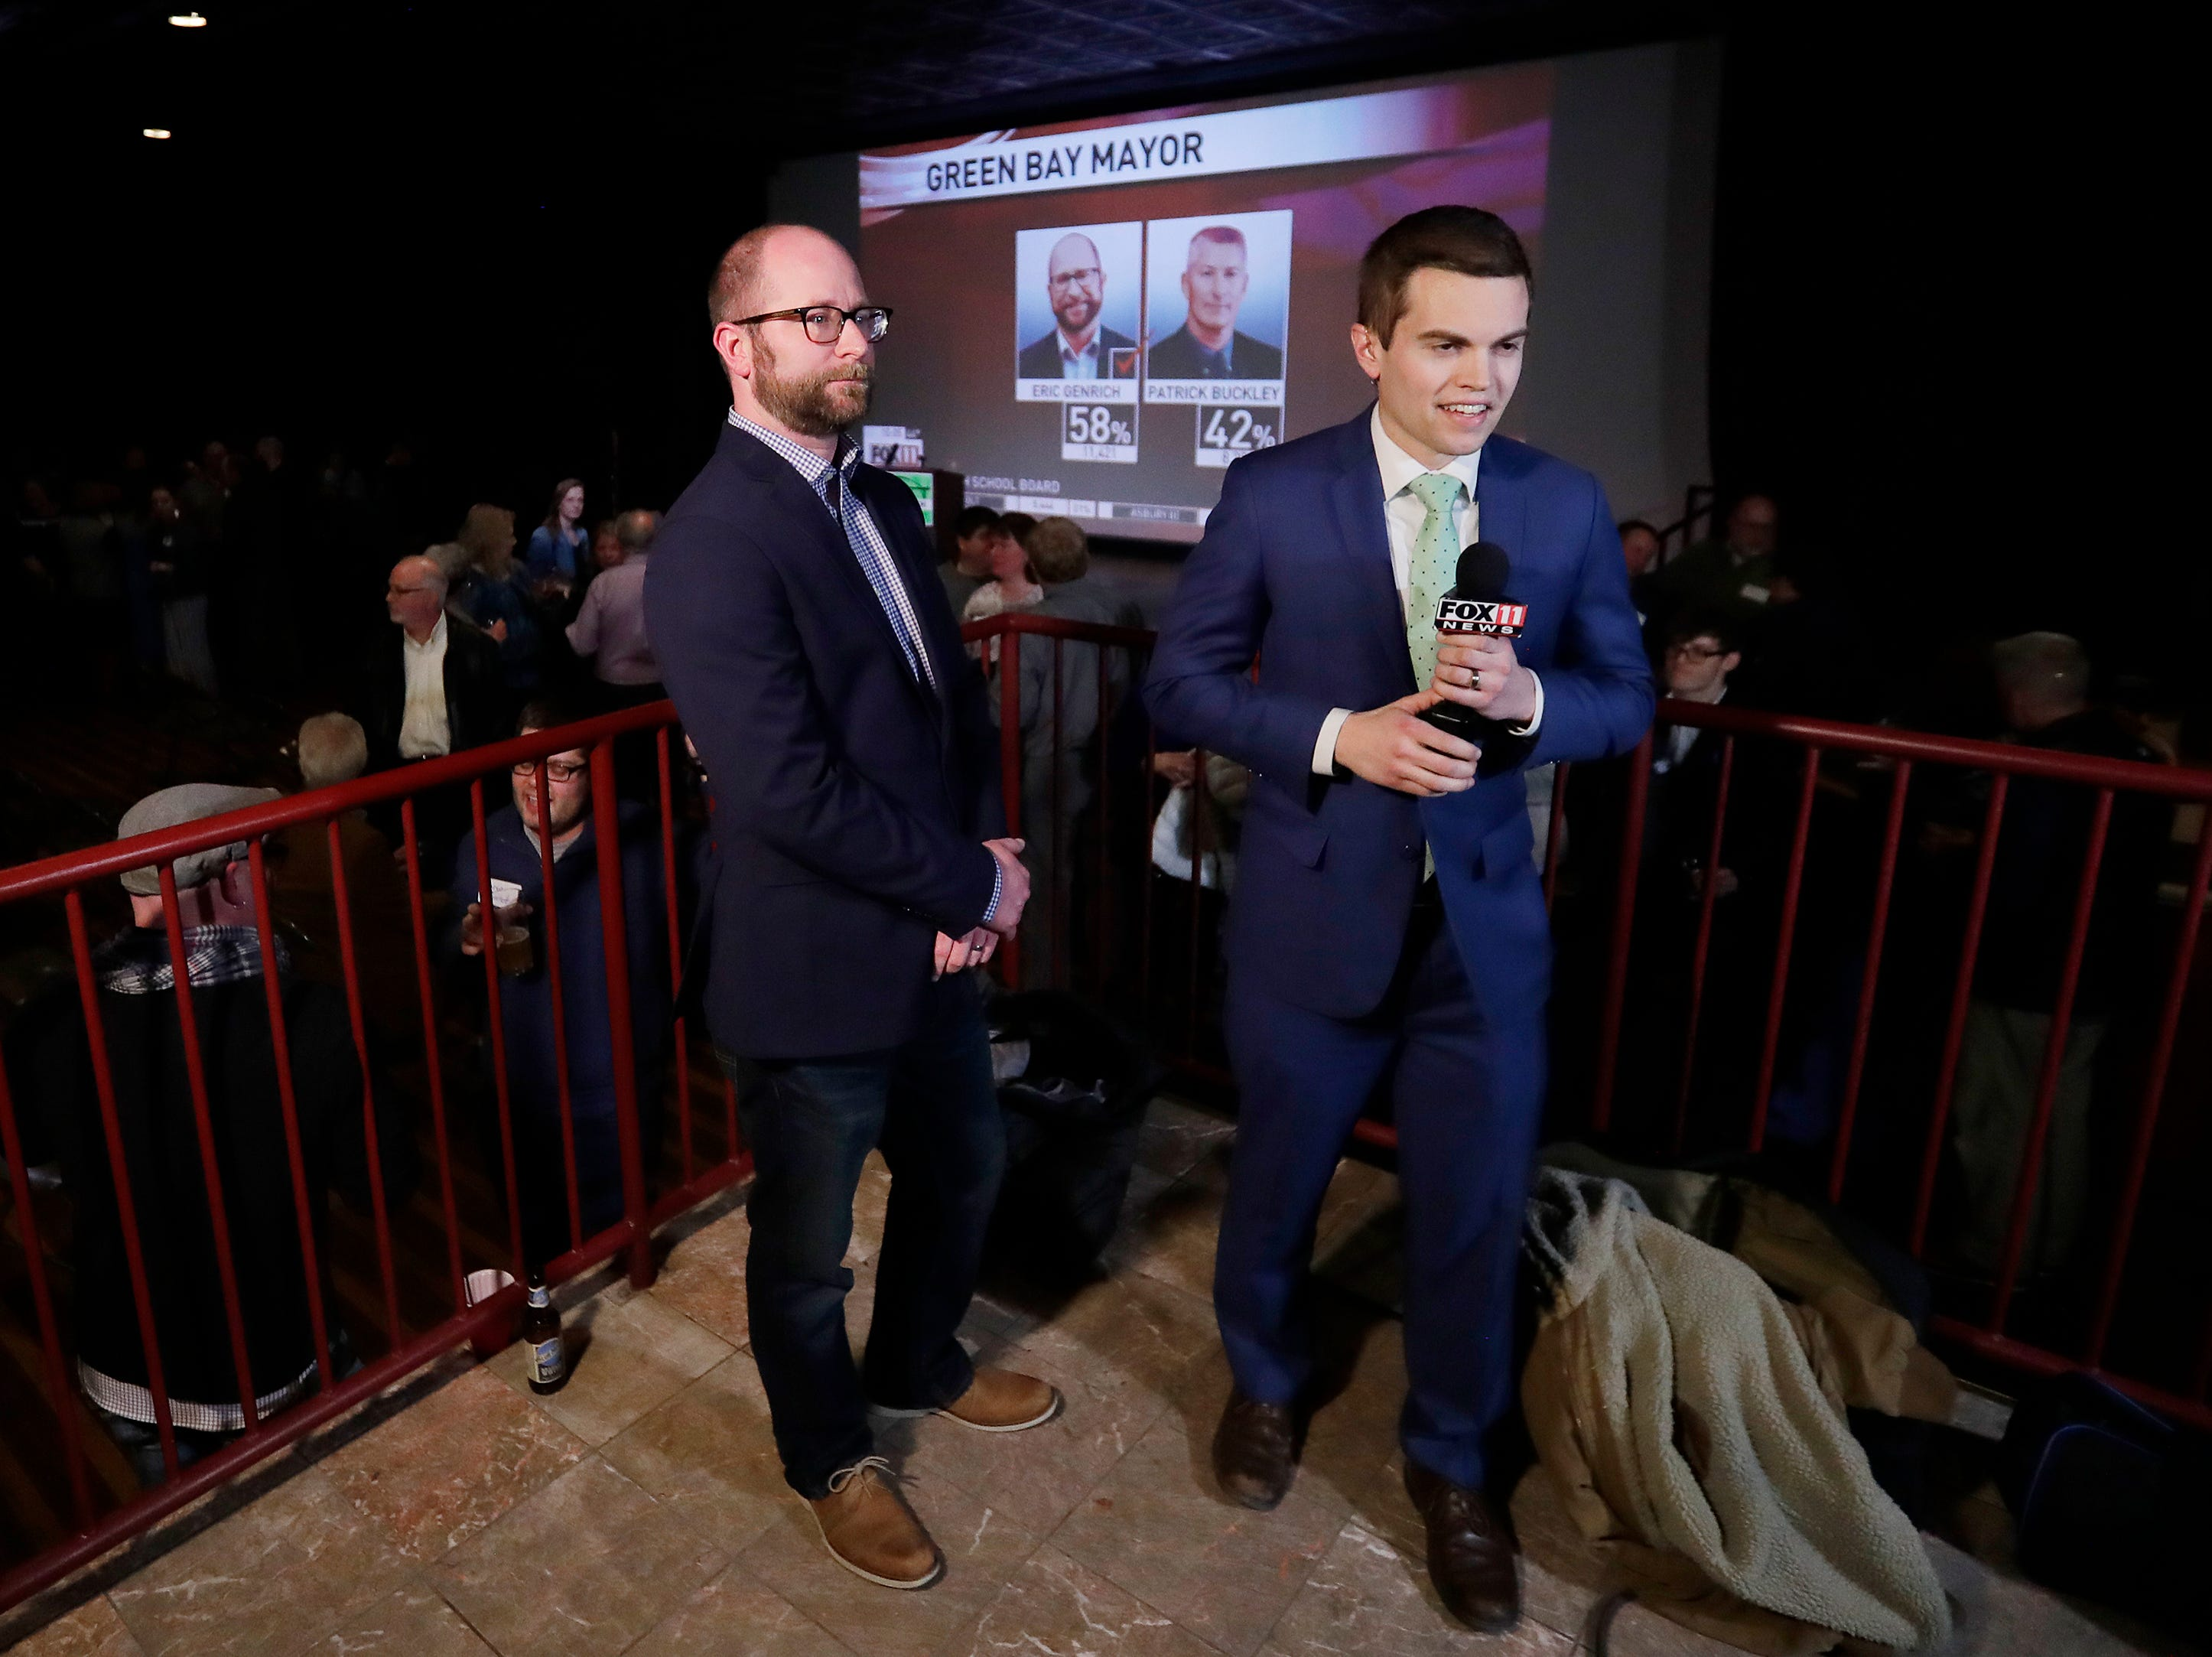 Mayor-elect Eric Genrich waits to speak to news reporters on election night at the Tarlton Theater on Tuesday, April 2, 2019 in Green Bay, Wis.